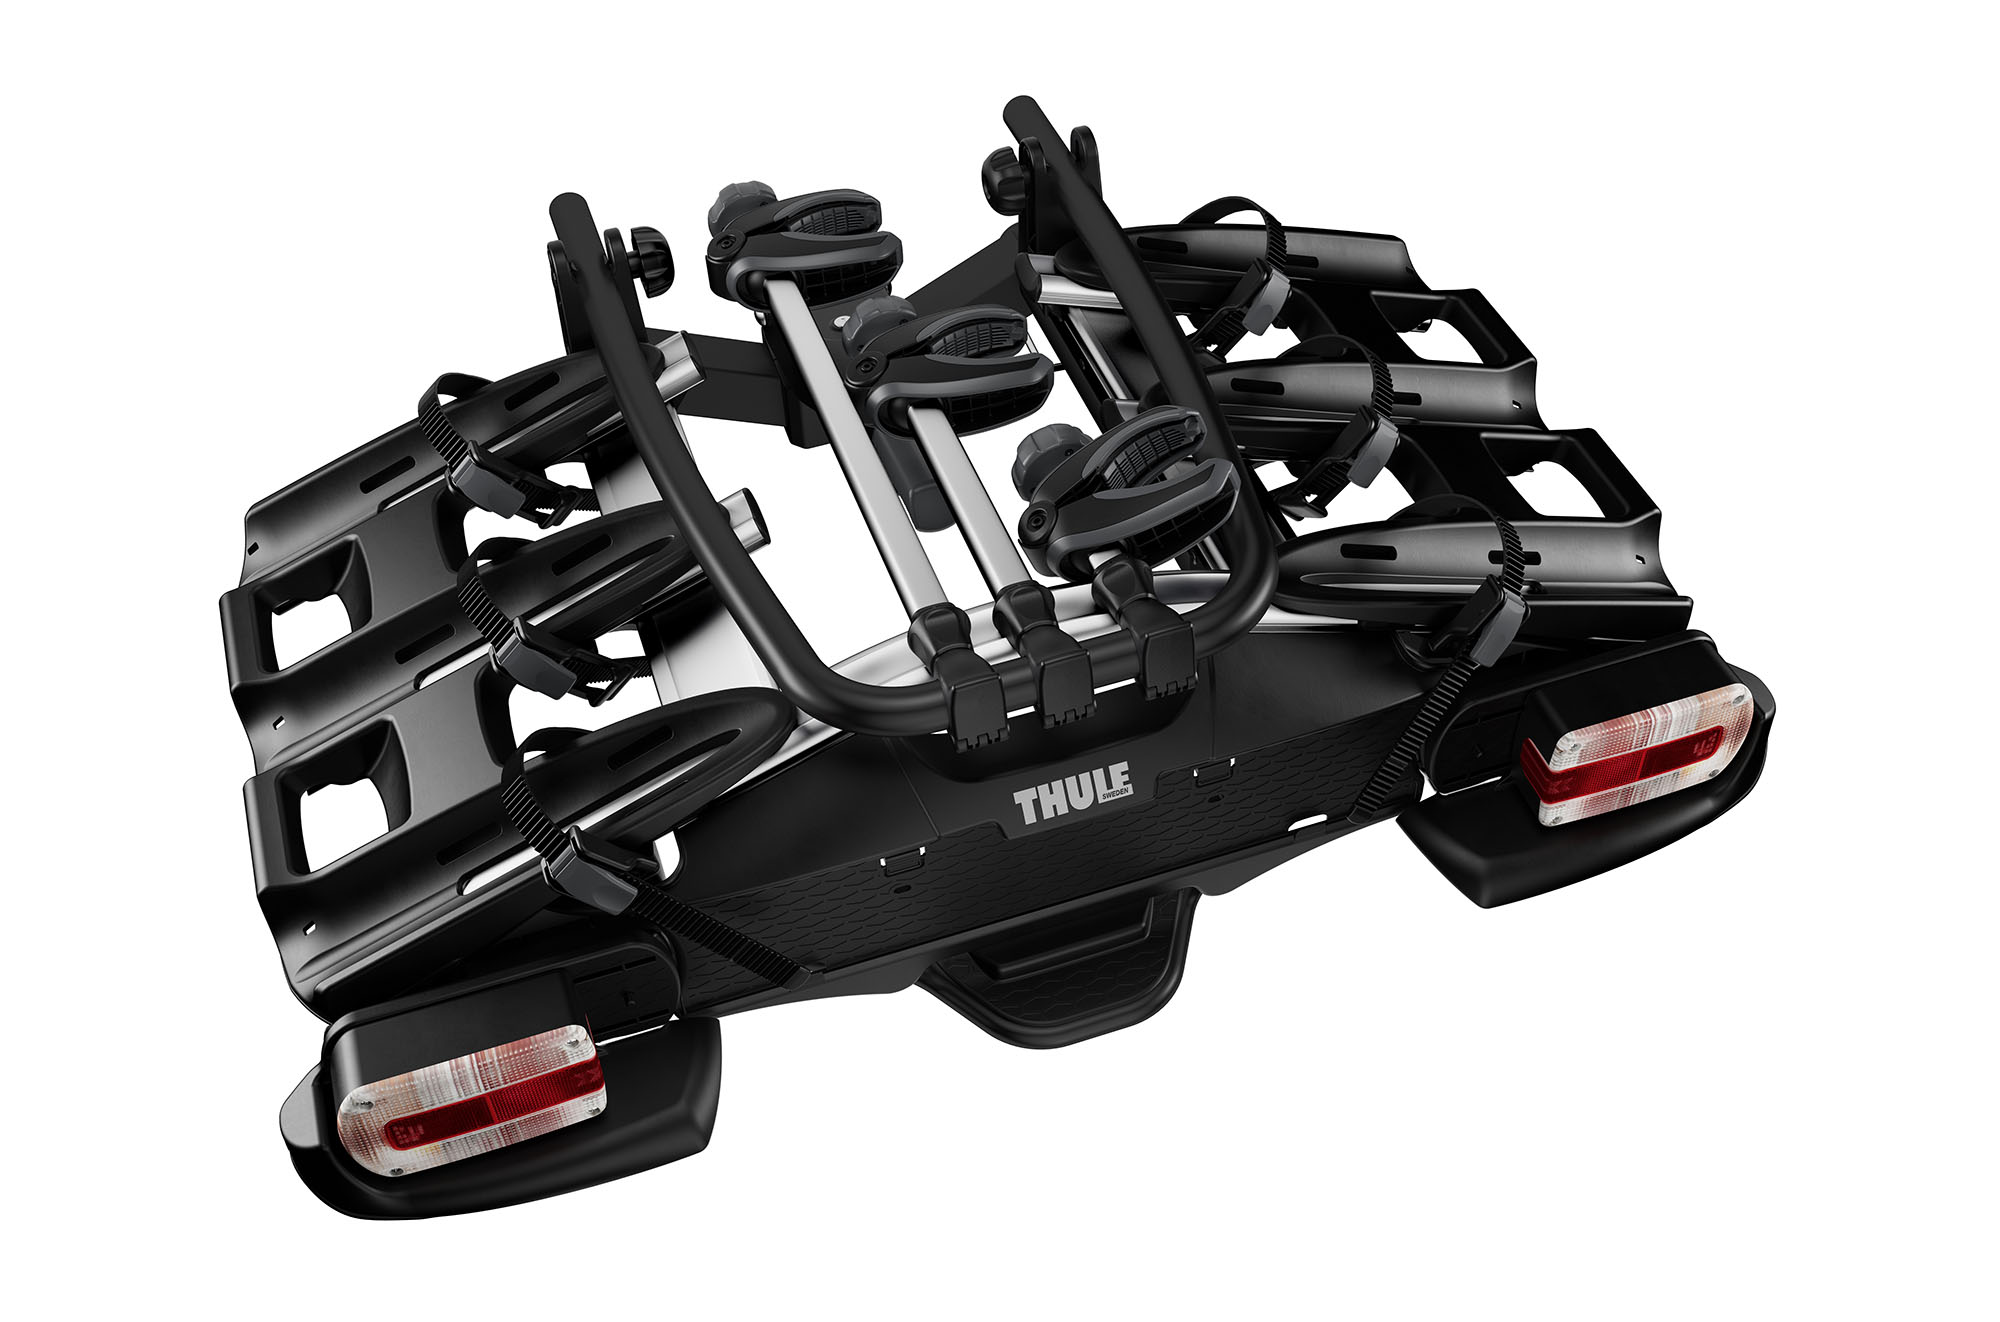 thule 927 velocompact 3 bike carrier the great outdoors hire. Black Bedroom Furniture Sets. Home Design Ideas